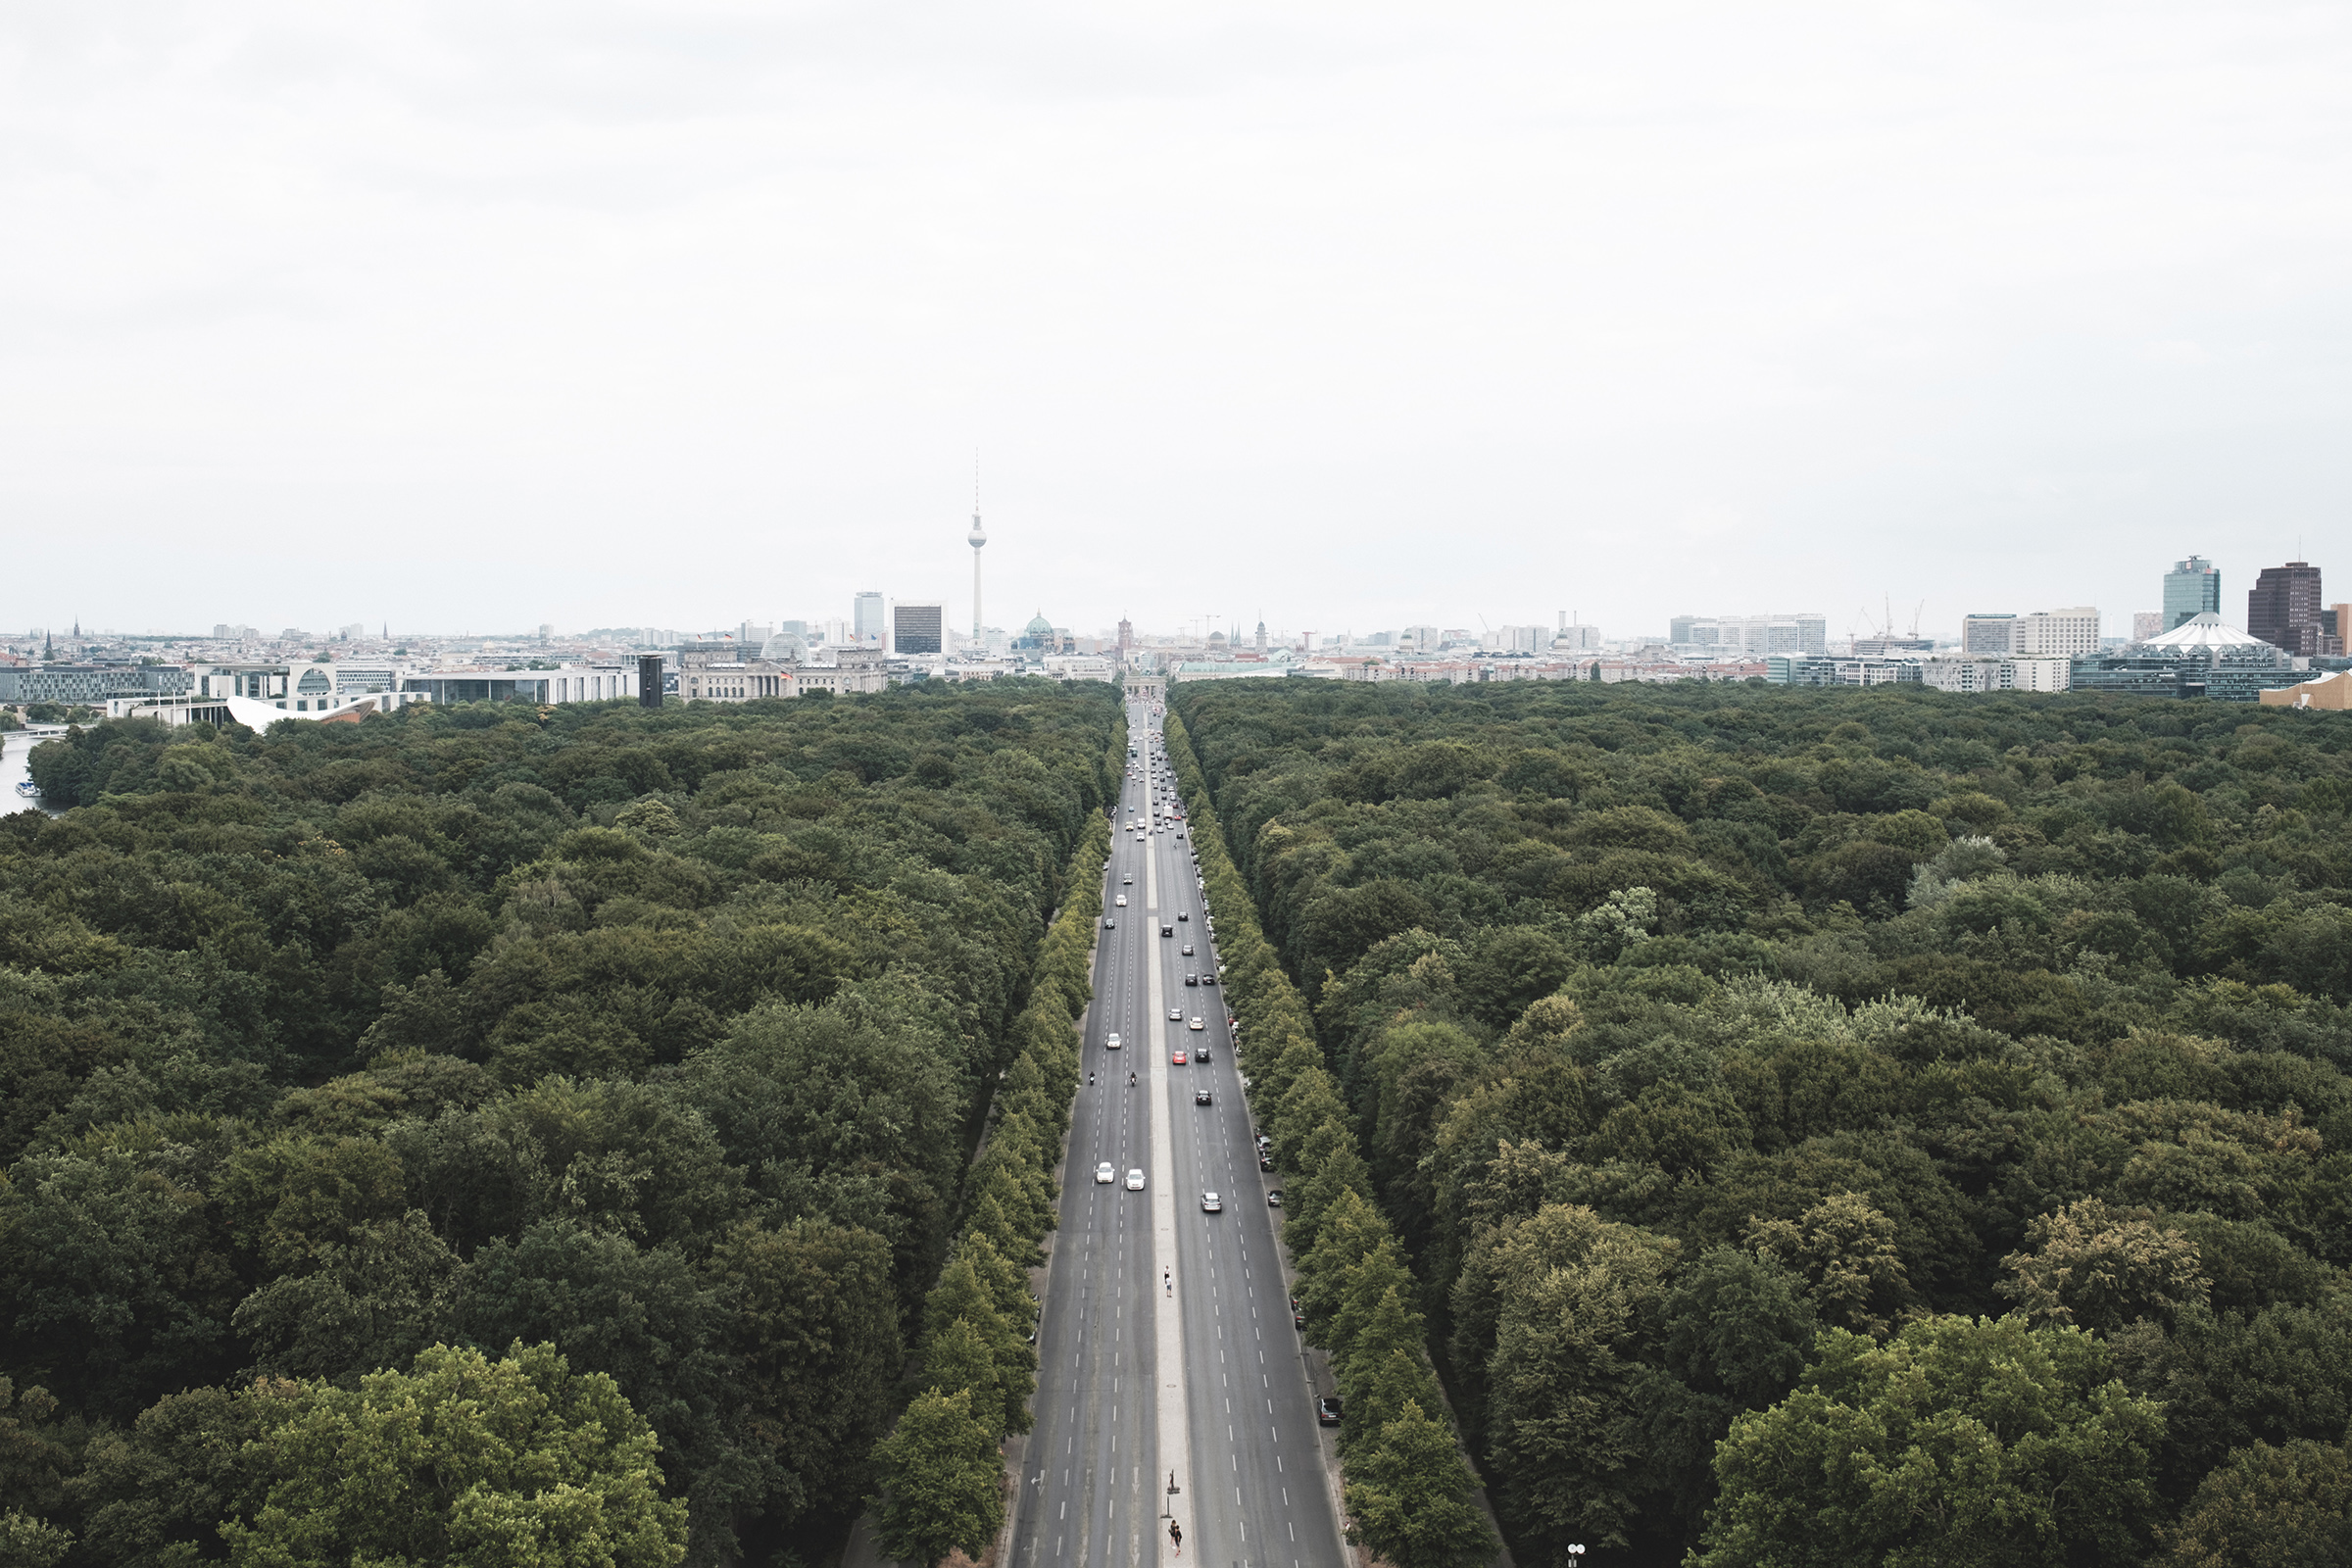 View of Großer Tiergarten Park and downtown Berlin from the Victory Column. The 67m column (283 steps) commemorates the Prussian-Danish war in 1864.